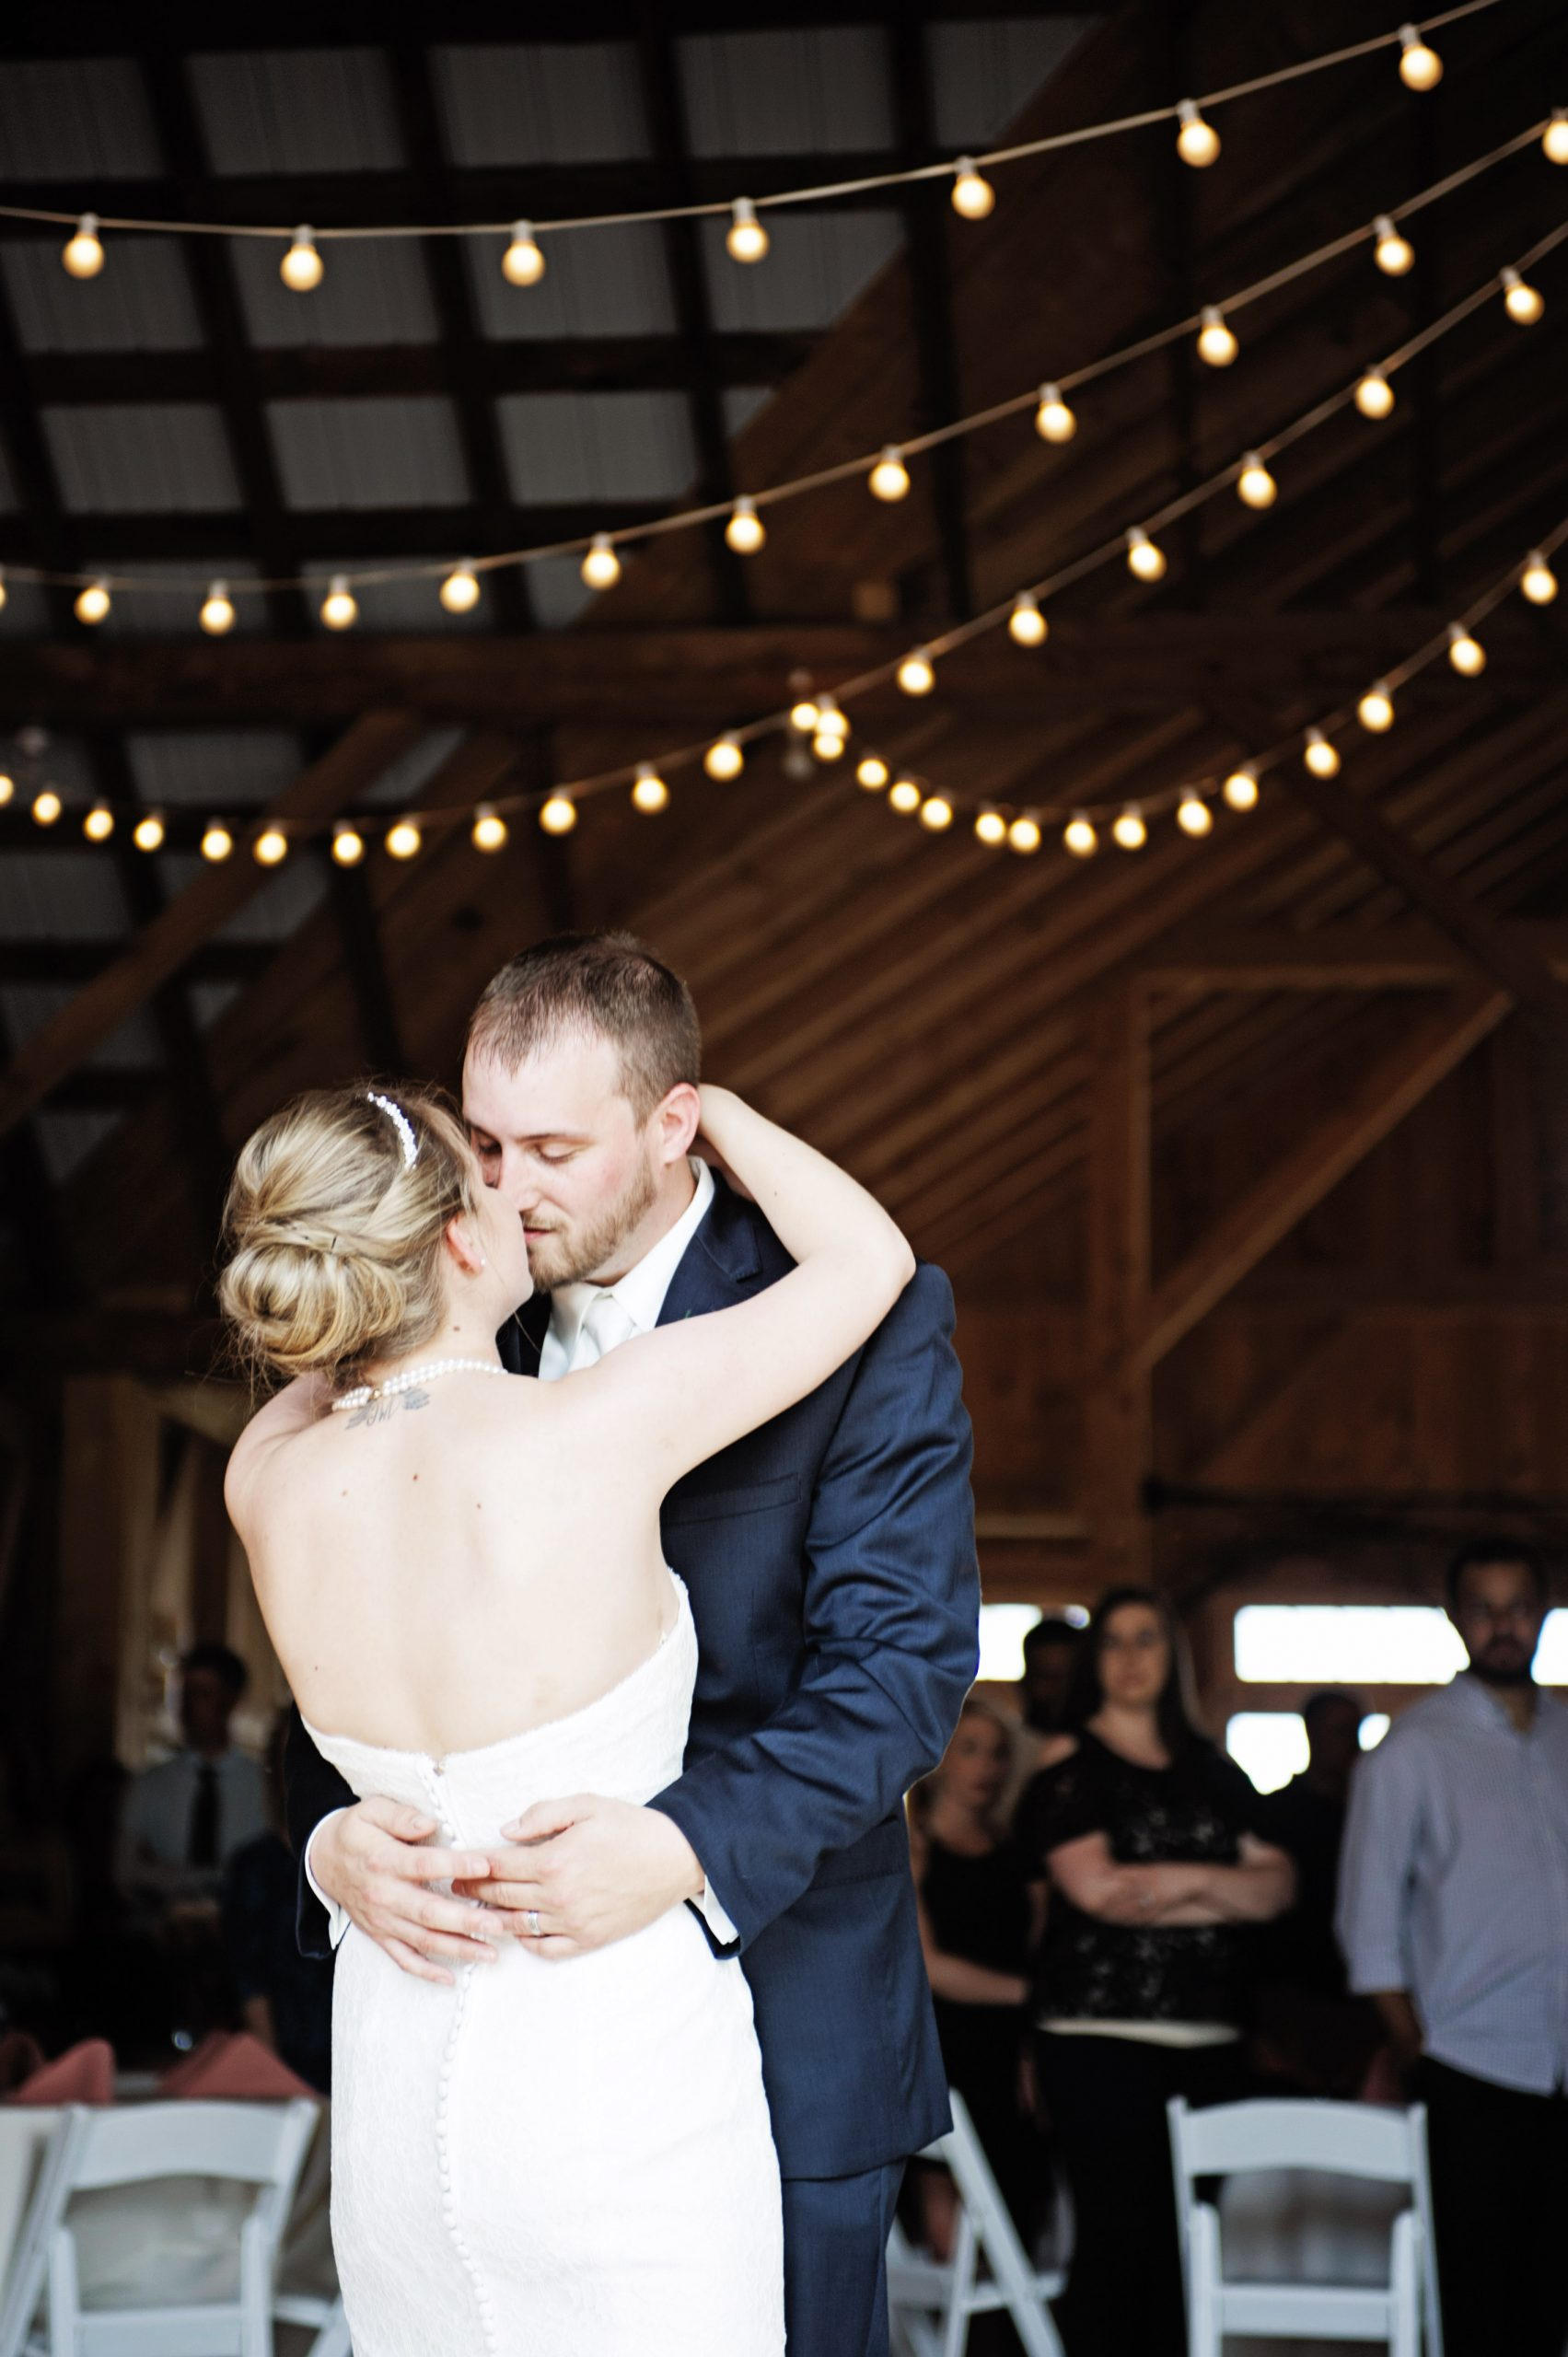 Embraced and leaning in for a kiss, this newlywed couple enjoys their splendors at Lakeview Farms of York, PA. Kelsey Kinard of Lovefusion Photography snapped a shot at just the right moment. Featured on Dream Weddings.